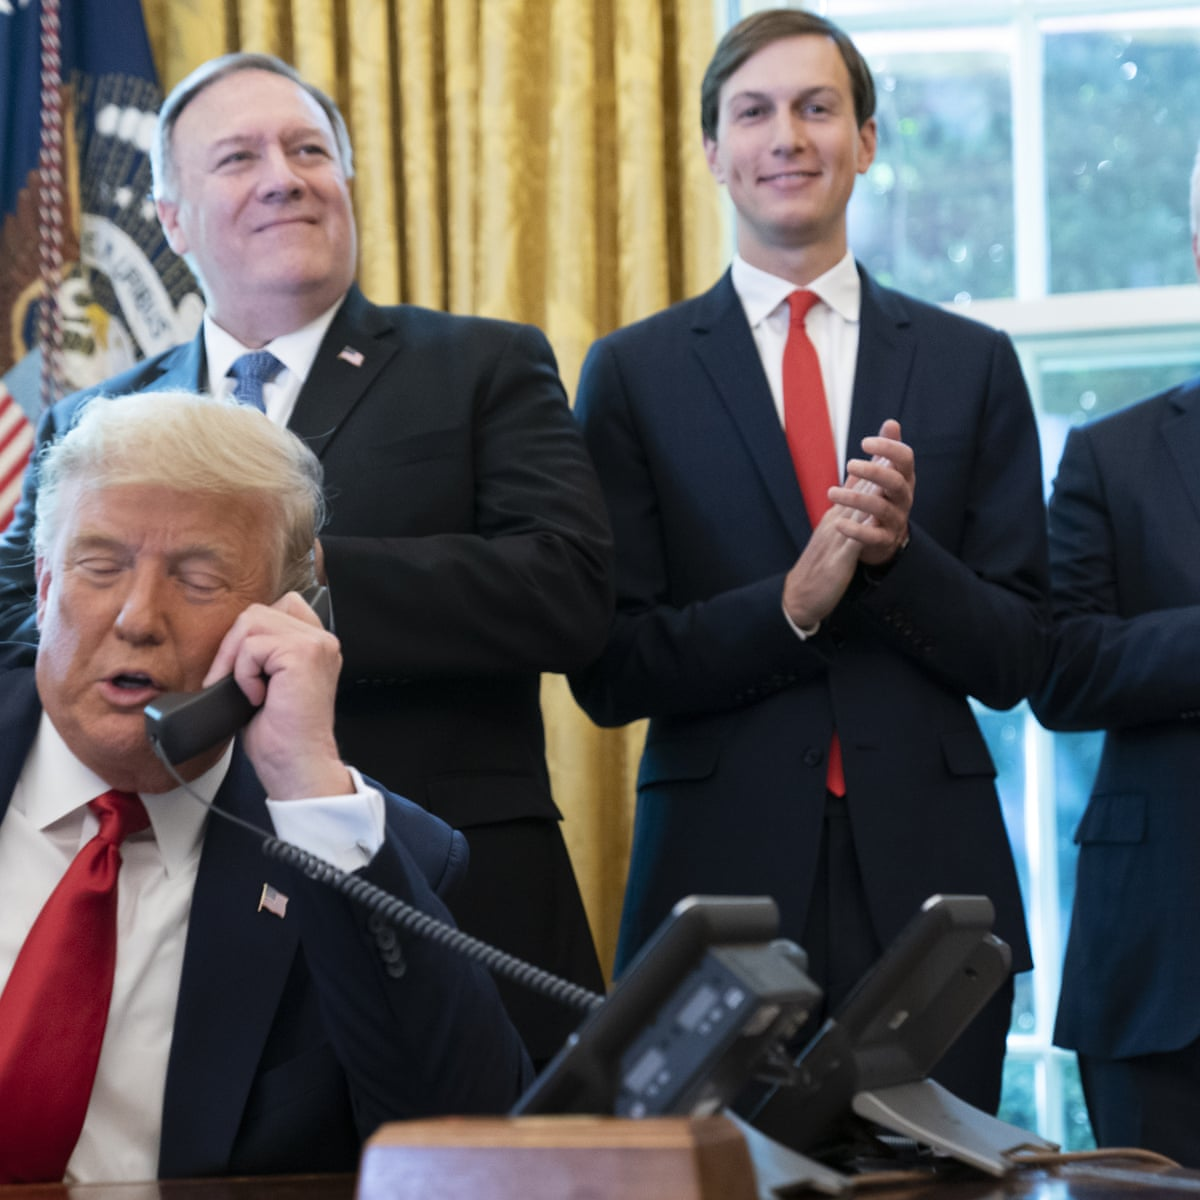 US President Donald Trump, Secretary of State Mike Pompeo and Middle East Peace Advisor Jared Kushner (Social Media)